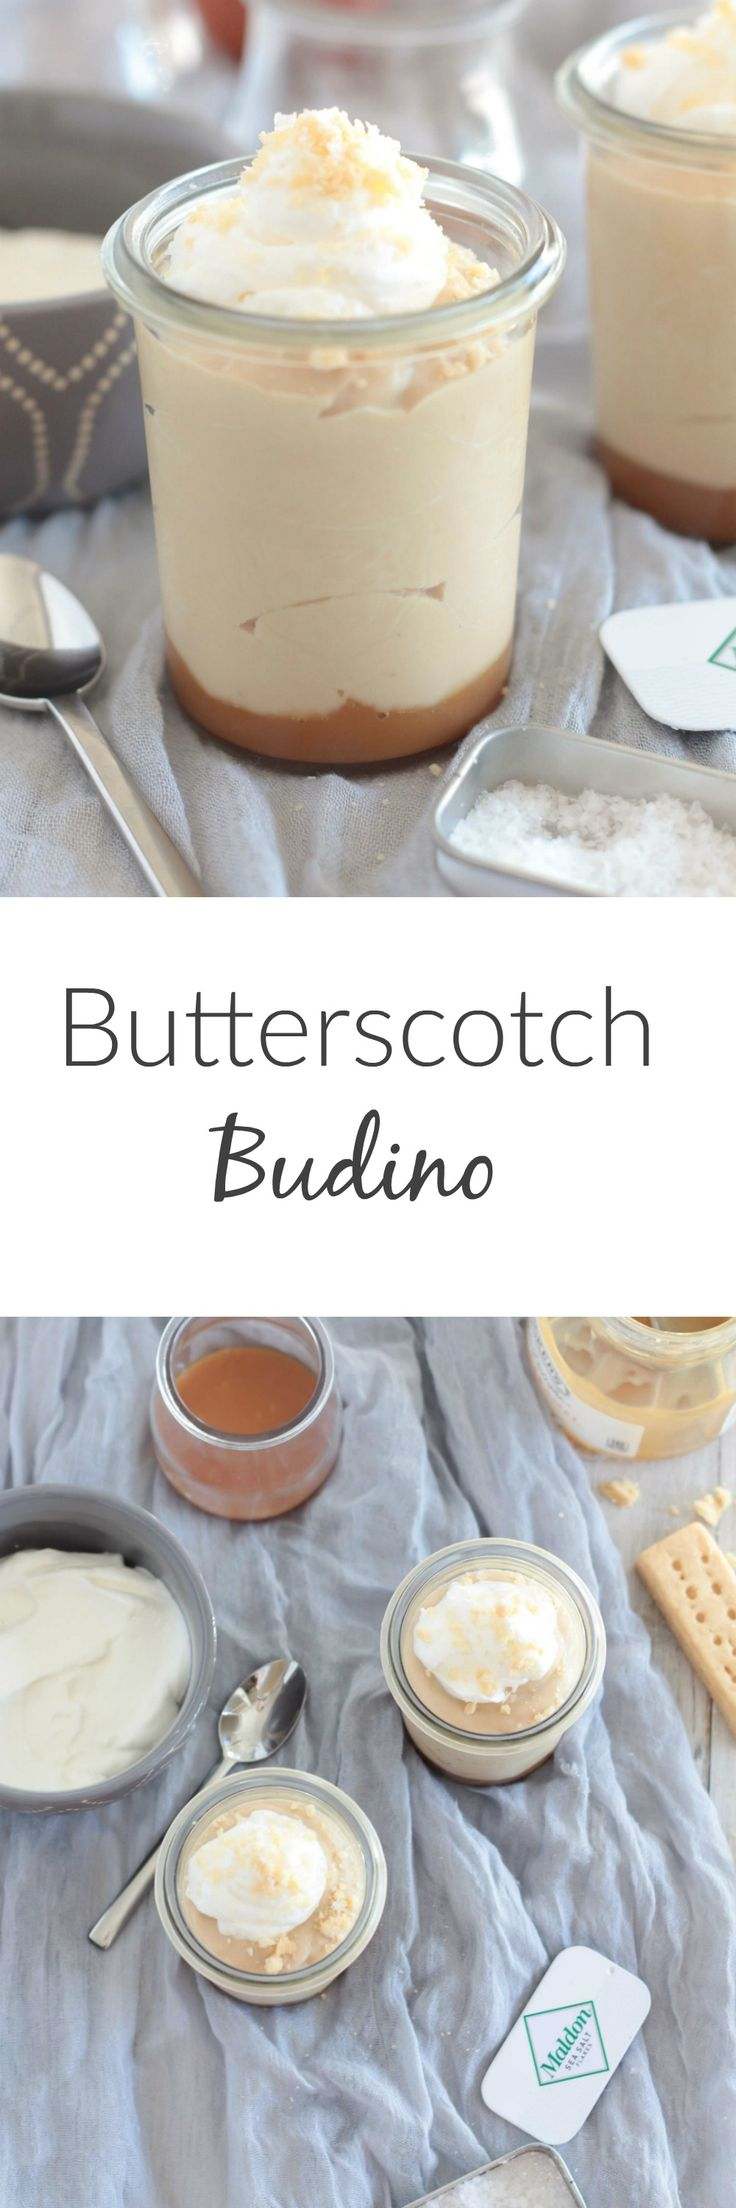 This luscious version of Butterscotch Budino comes with a layer of salted caramel on the bottom and salted shortbread cookie crumbles on top.